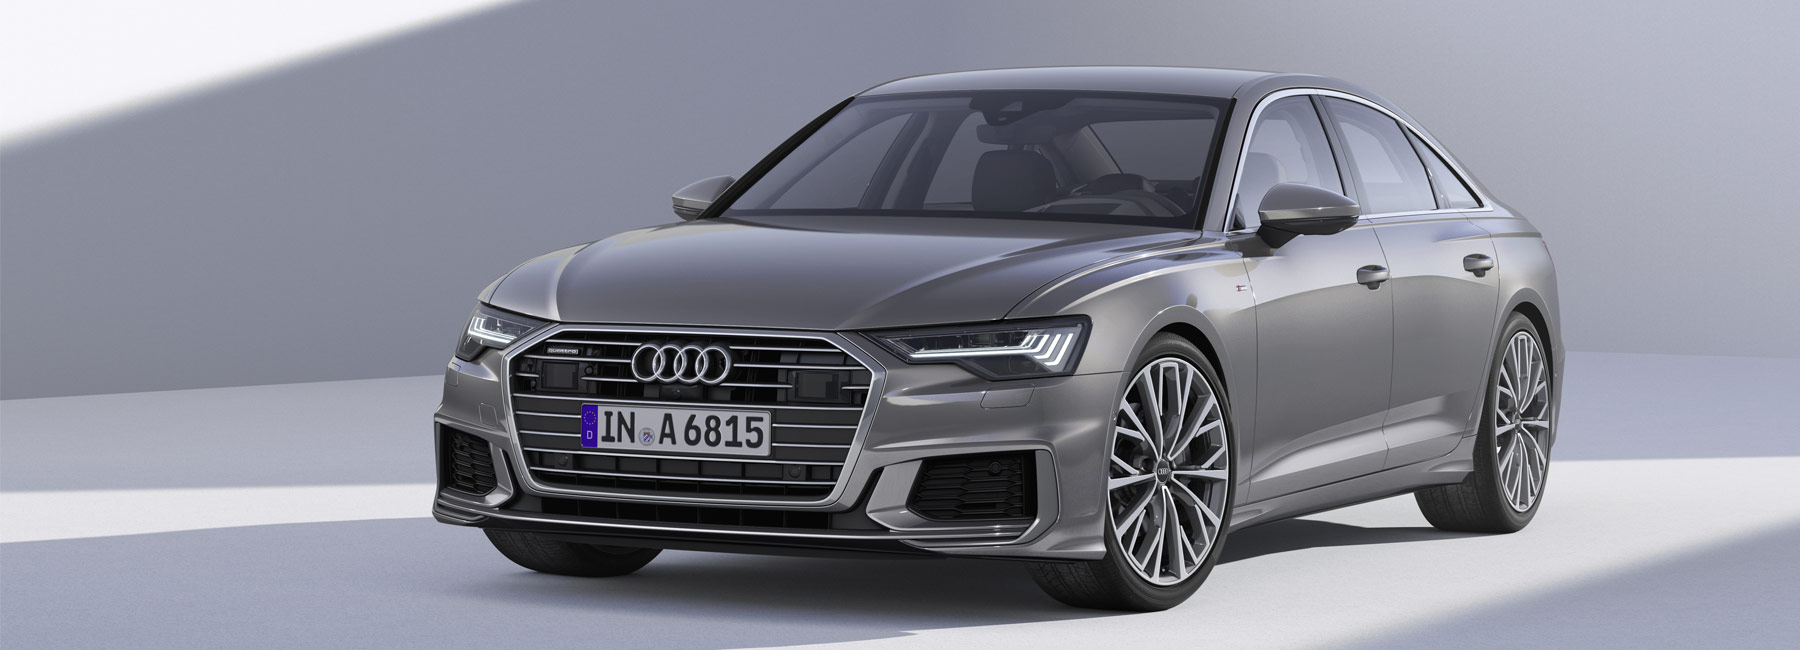 Travel Buggy With Sunroof Audi A6 Sedan Adds A Sporty Streak To Luxury Business Class